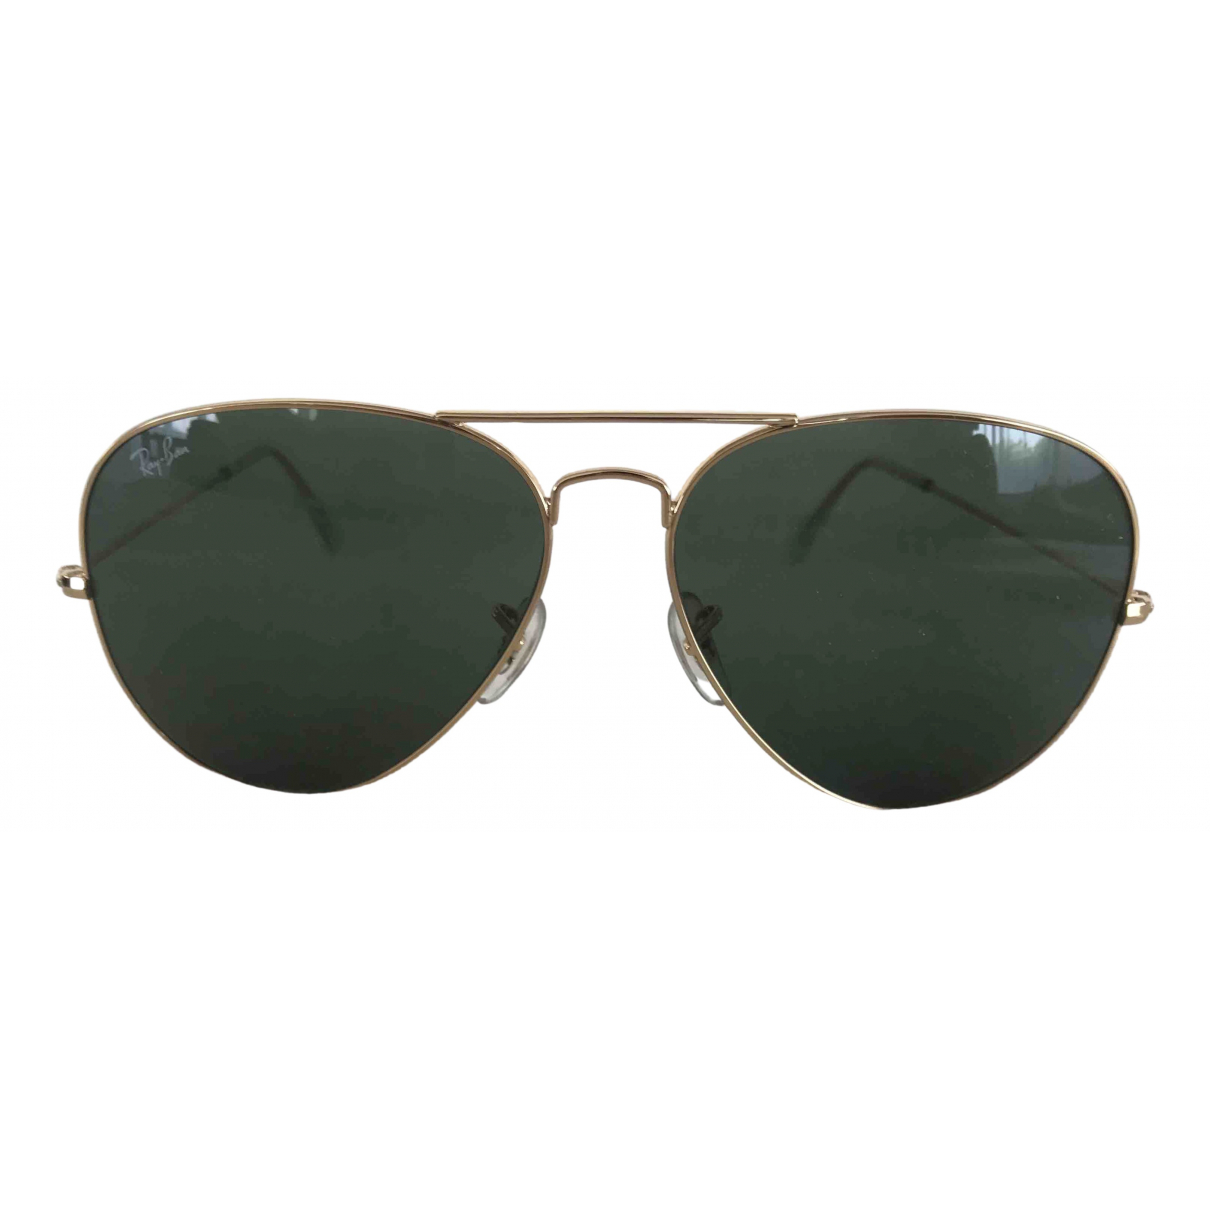 Ray-ban Aviator Black Metal Sunglasses for Men \N